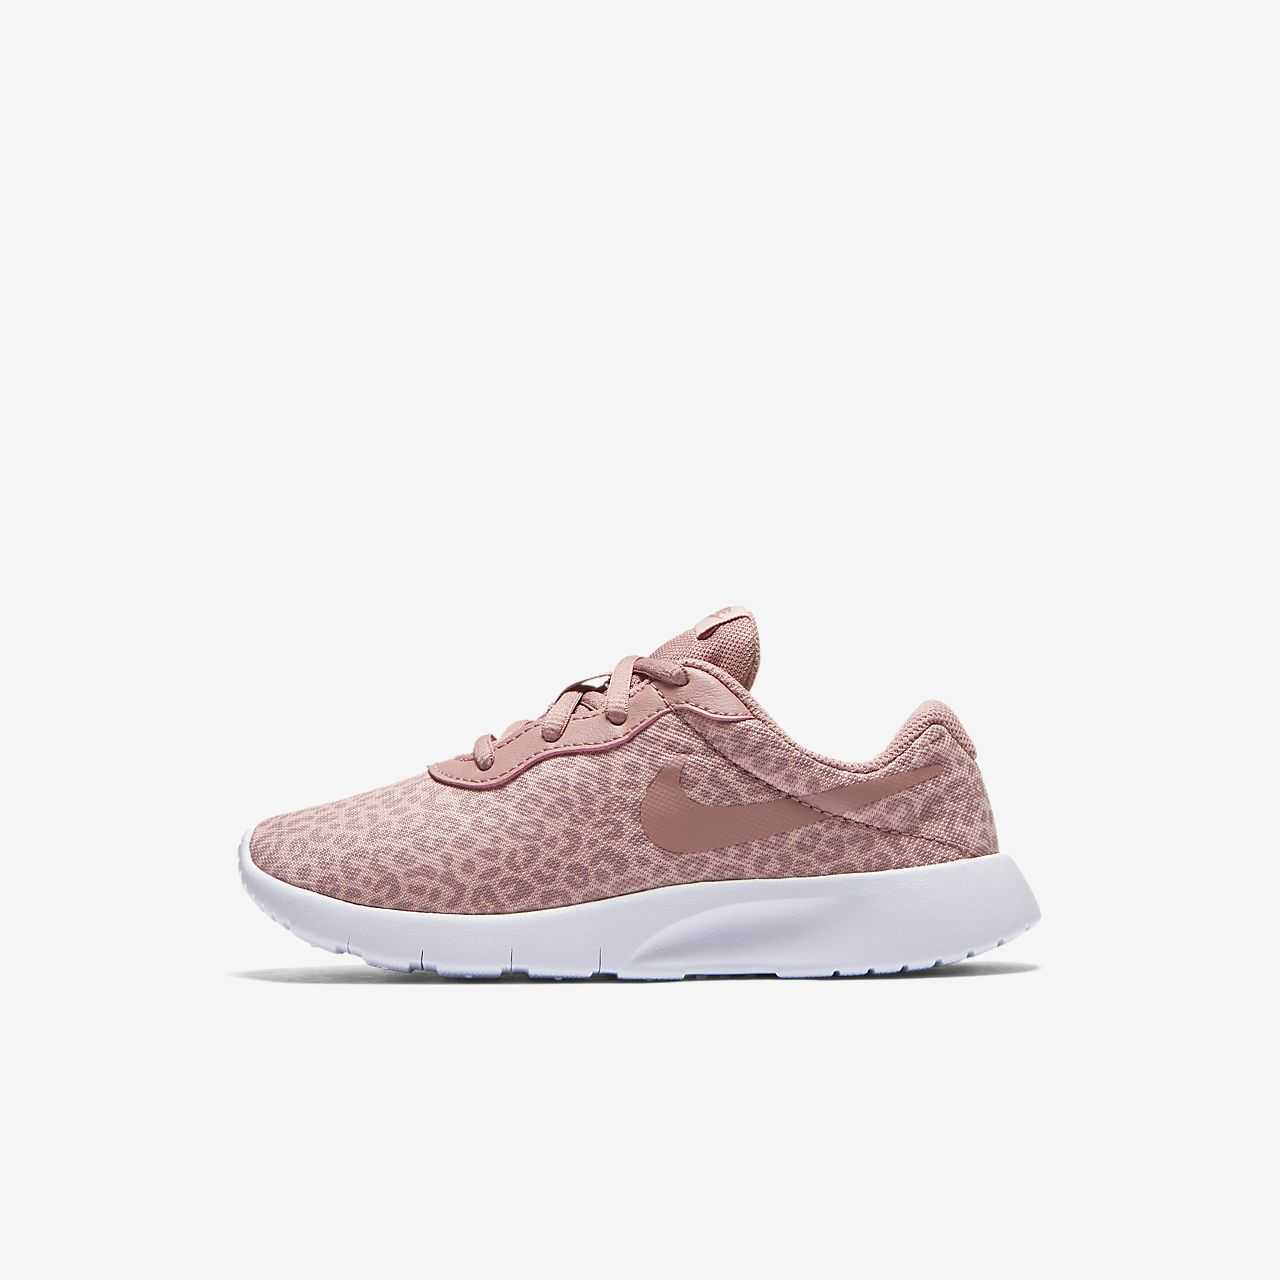 Nike Tanjun Print Boys Lifestyle Shoes White/Pink eT9166I